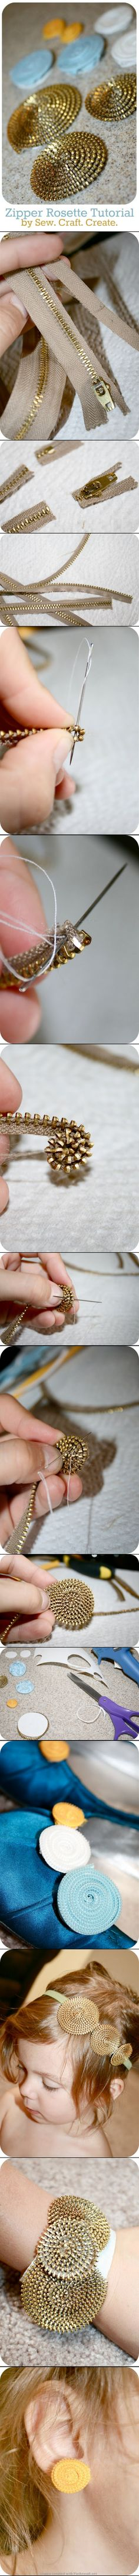 Zipper Rosette Tutorial